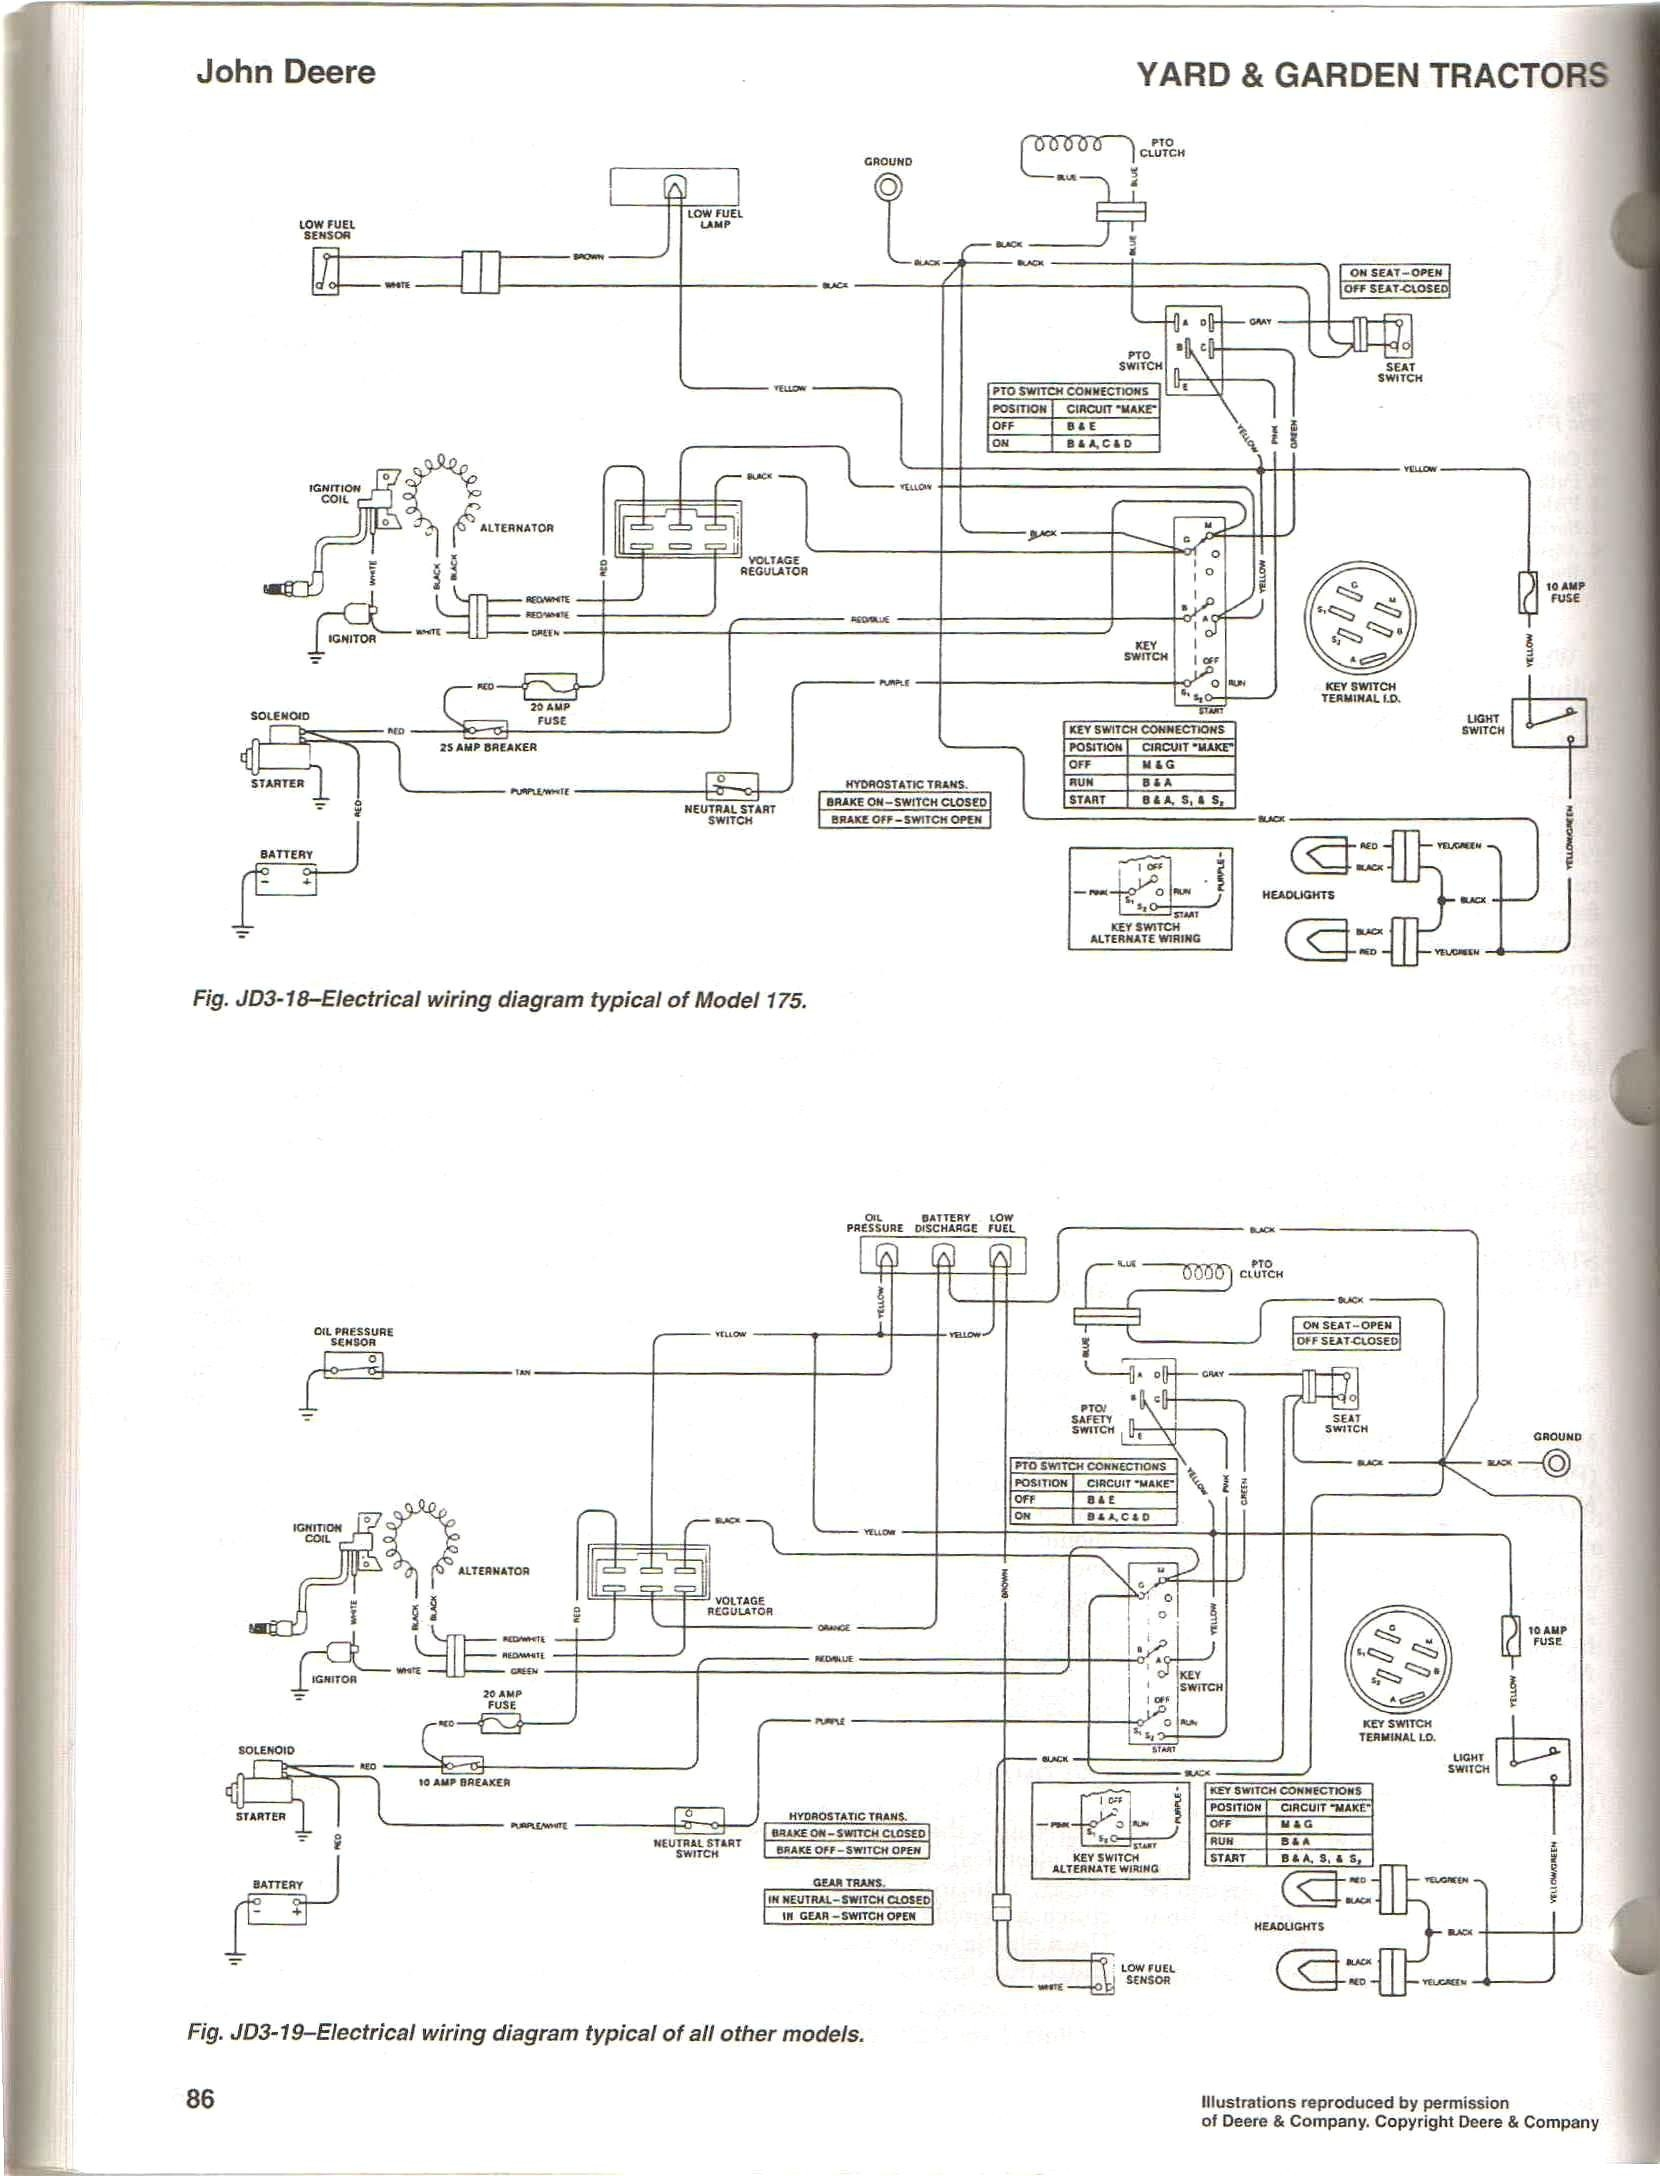 john deere f525 wiring diagram free wiring diagram. Black Bedroom Furniture Sets. Home Design Ideas